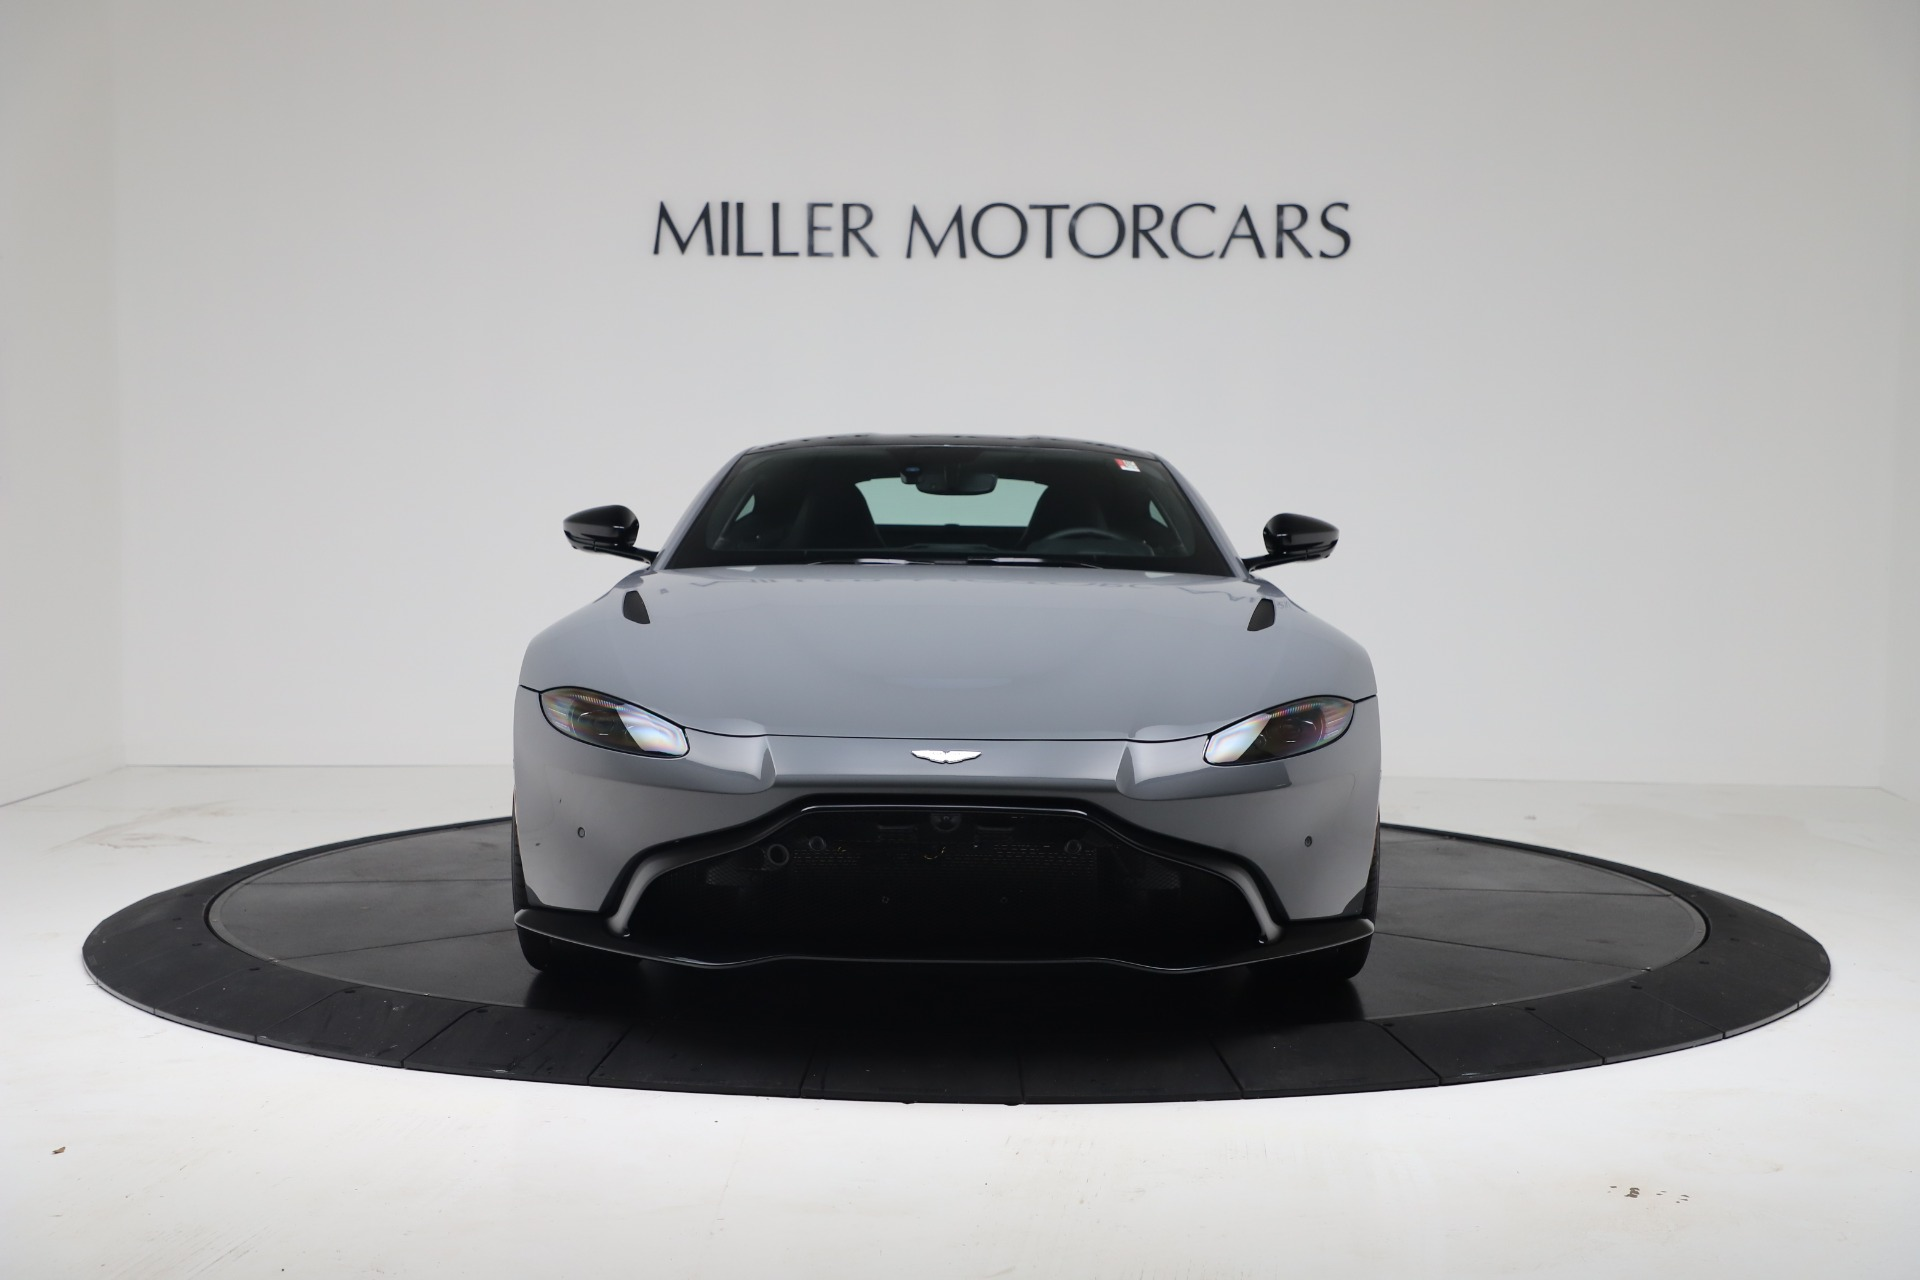 New 2020 Aston Martin Vantage V8 For Sale In Westport, CT 3482_p6